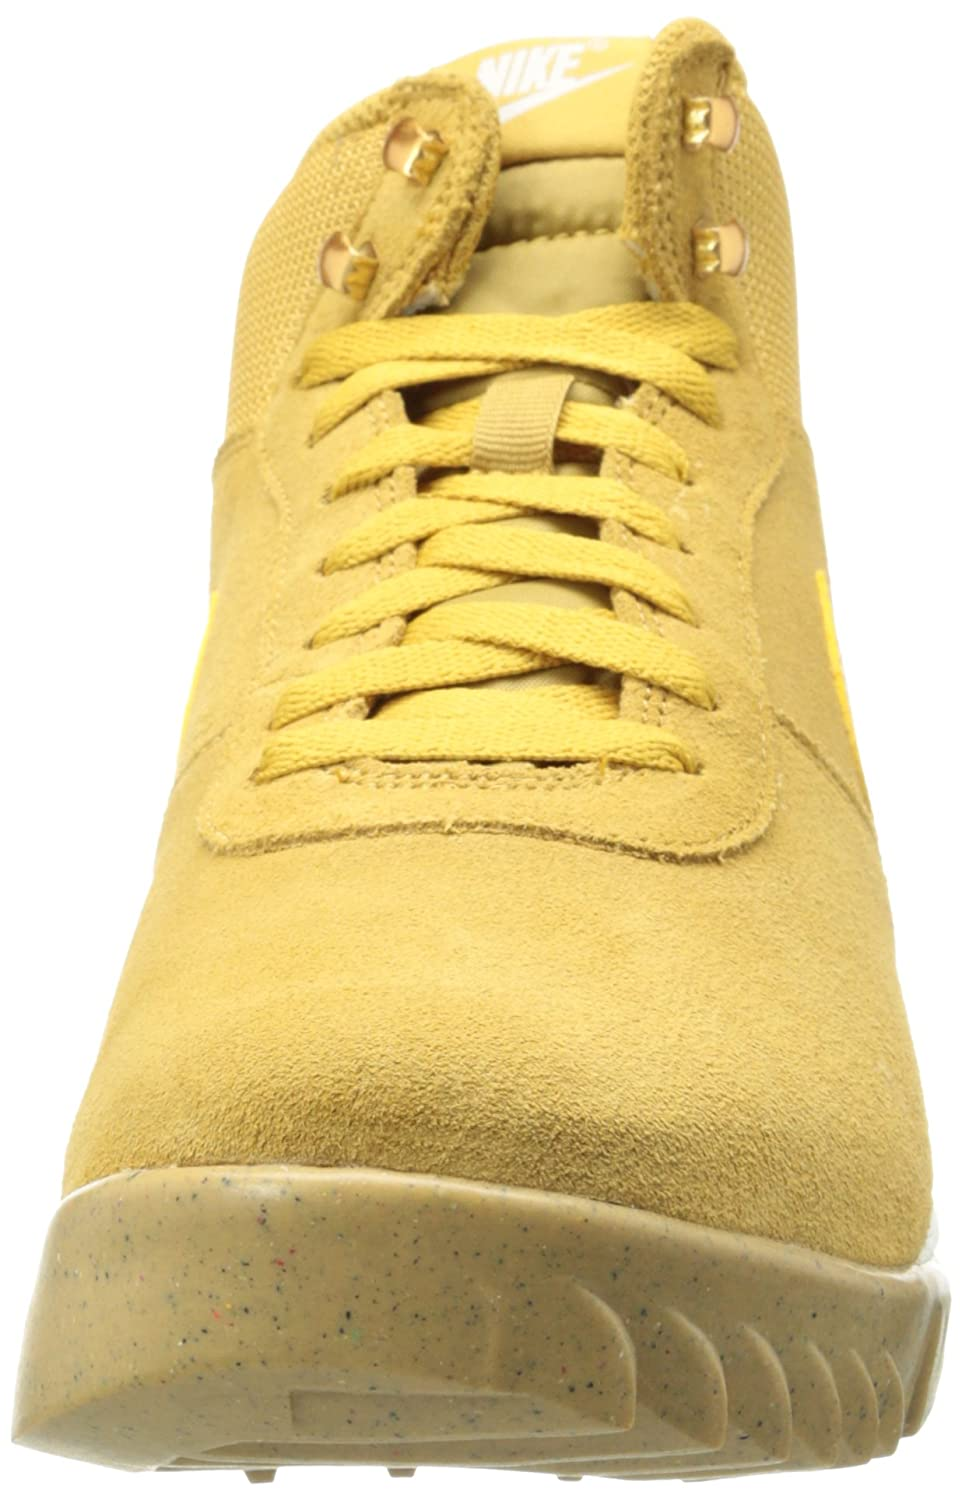 brand new 378ef affb3 Amazon.com   Nike Hoodland Suede Men s Lace-up Boots   Basketball